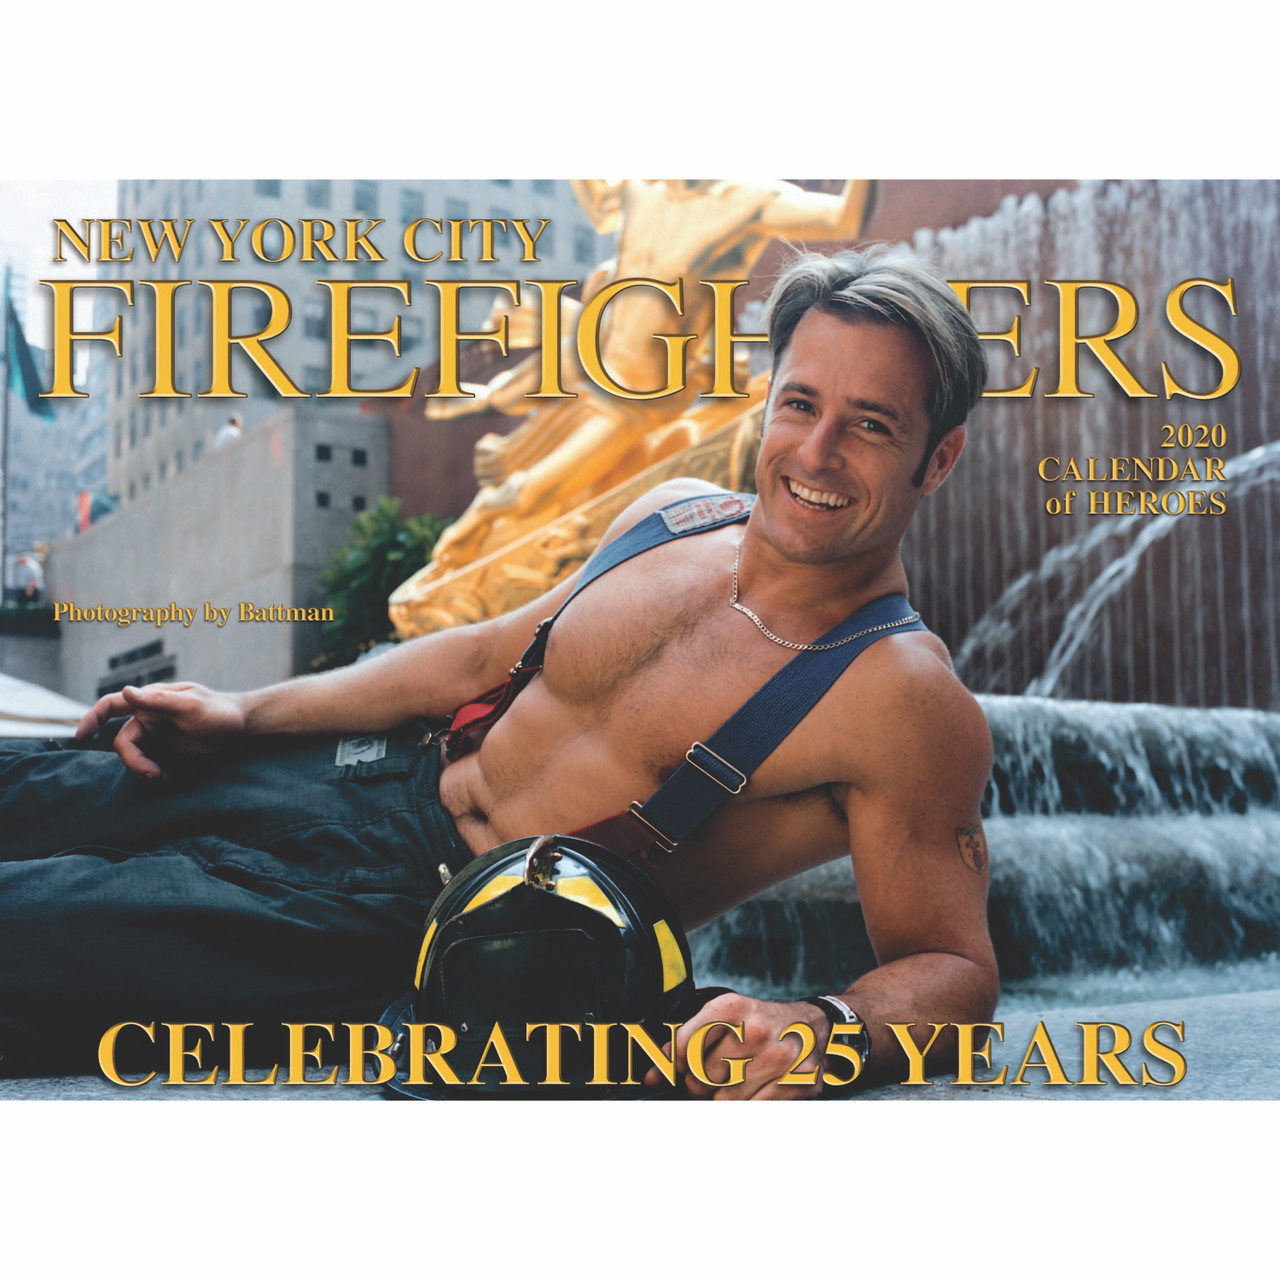 Boston Firefighter Calendar 2020 2020 NYC Firefighters Calendars FDNY Calendar of Heroes